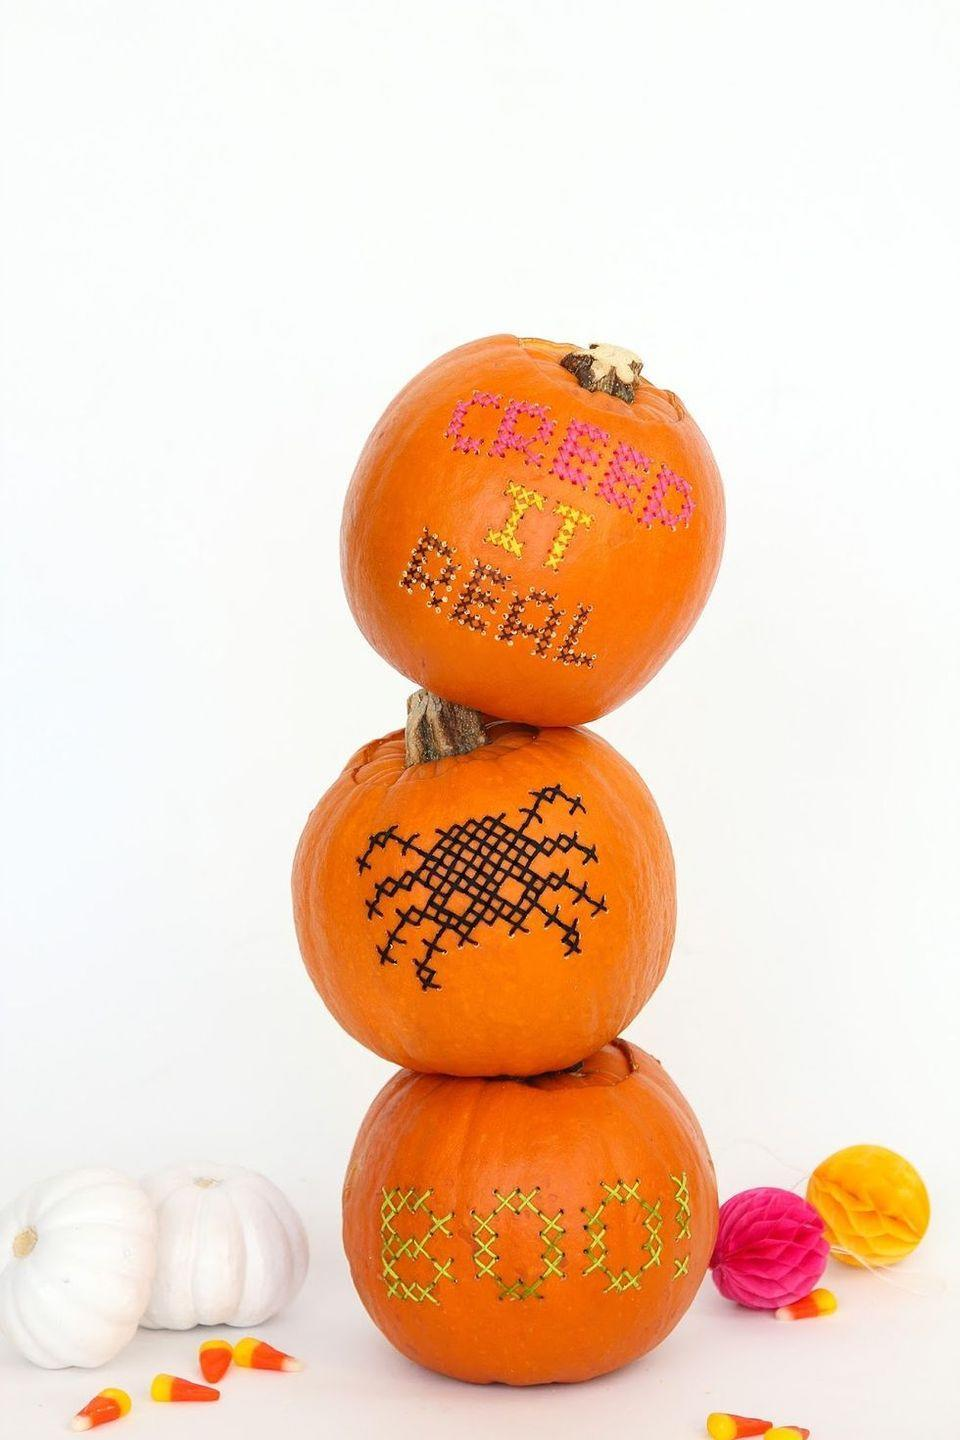 """<p>Crafters, you're going to love this one: With a little bit of embroidery thread and the help of a drill bit, these DIY pumpkins really do end up looking like cross-stitched masterpieces. </p><p><strong>Get the tutorial at <a href=""""http://www.awwsam.com/2015/10/diy-cross-stitch-pumpkins-on.html"""" rel=""""nofollow noopener"""" target=""""_blank"""" data-ylk=""""slk:Aww Sam"""" class=""""link rapid-noclick-resp"""">Aww Sam</a>.</strong></p><p><strong><a class=""""link rapid-noclick-resp"""" href=""""https://go.redirectingat.com?id=74968X1596630&url=https%3A%2F%2Fwww.walmart.com%2Fsearch%2F%3Fquery%3Dembroidery%2Bthread&sref=https%3A%2F%2Fwww.thepioneerwoman.com%2Fhome-lifestyle%2Fcrafts-diy%2Fg36982763%2Fpumpkin-carving-ideas%2F"""" rel=""""nofollow noopener"""" target=""""_blank"""" data-ylk=""""slk:SHOP EMBROIDERY THREAD"""">SHOP EMBROIDERY THREAD</a><br></strong></p>"""